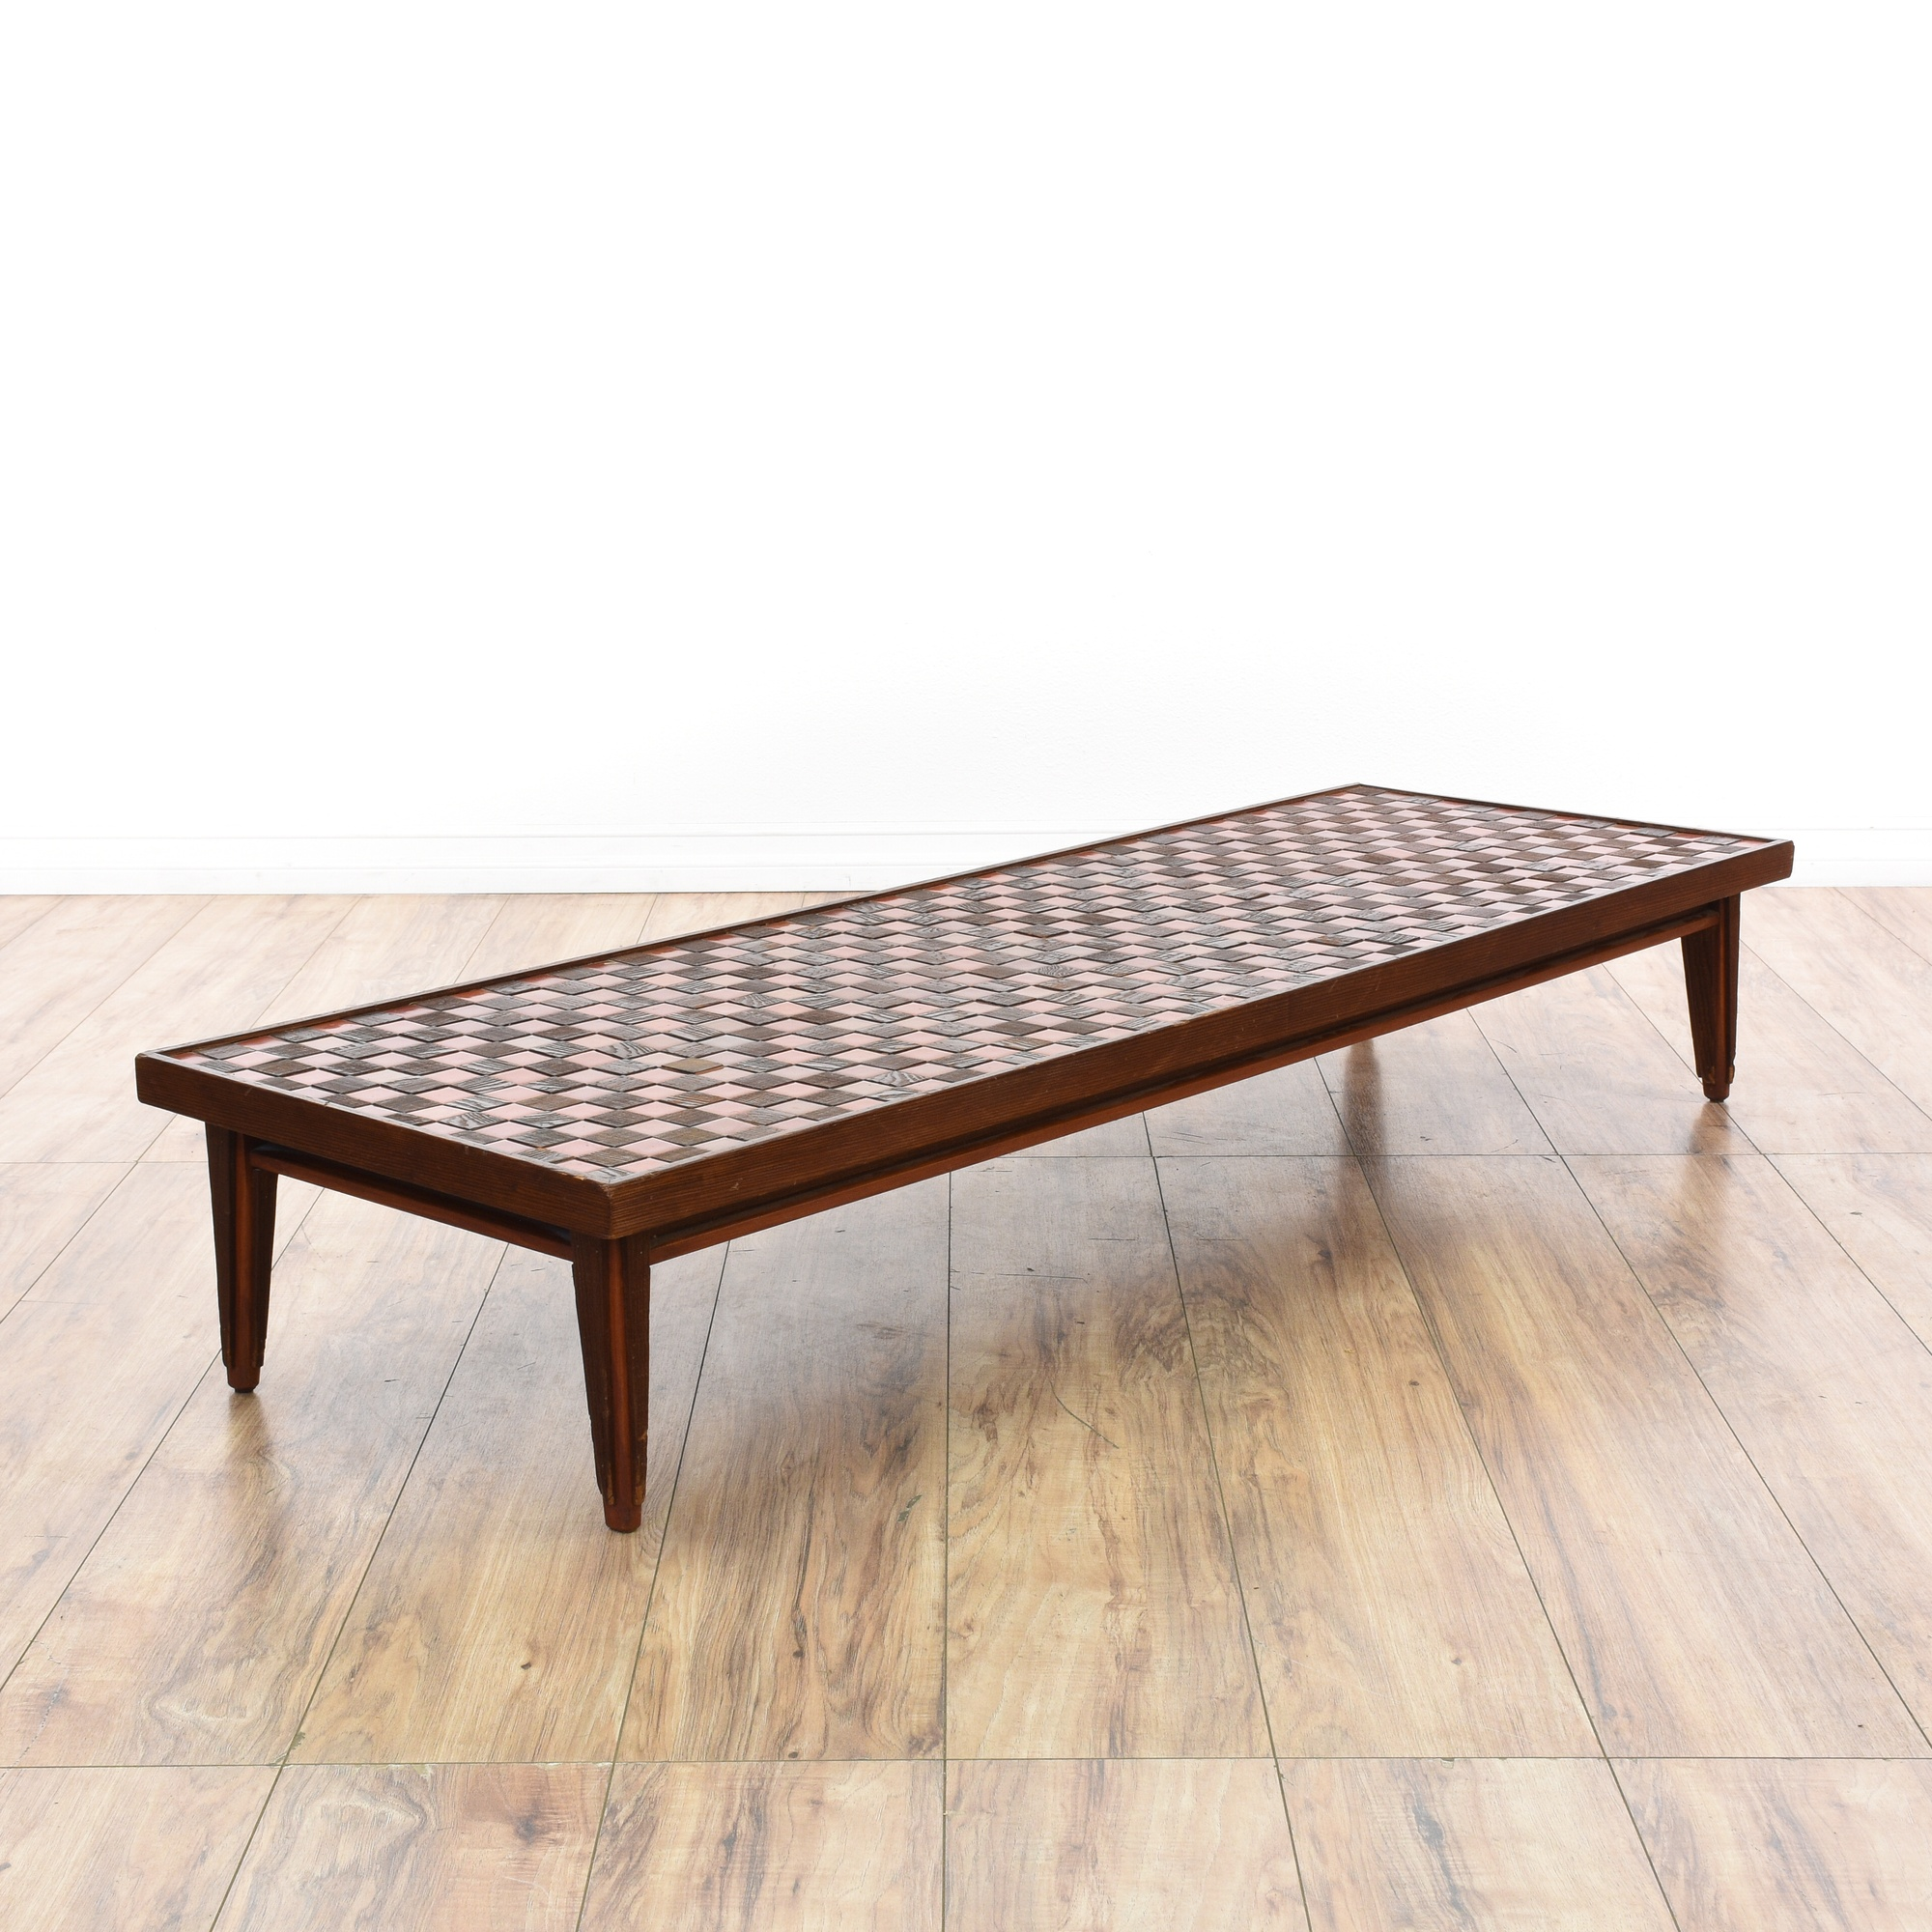 Tile Coffee Table Set: Tile & Wood Mosaic Top Coffee Table